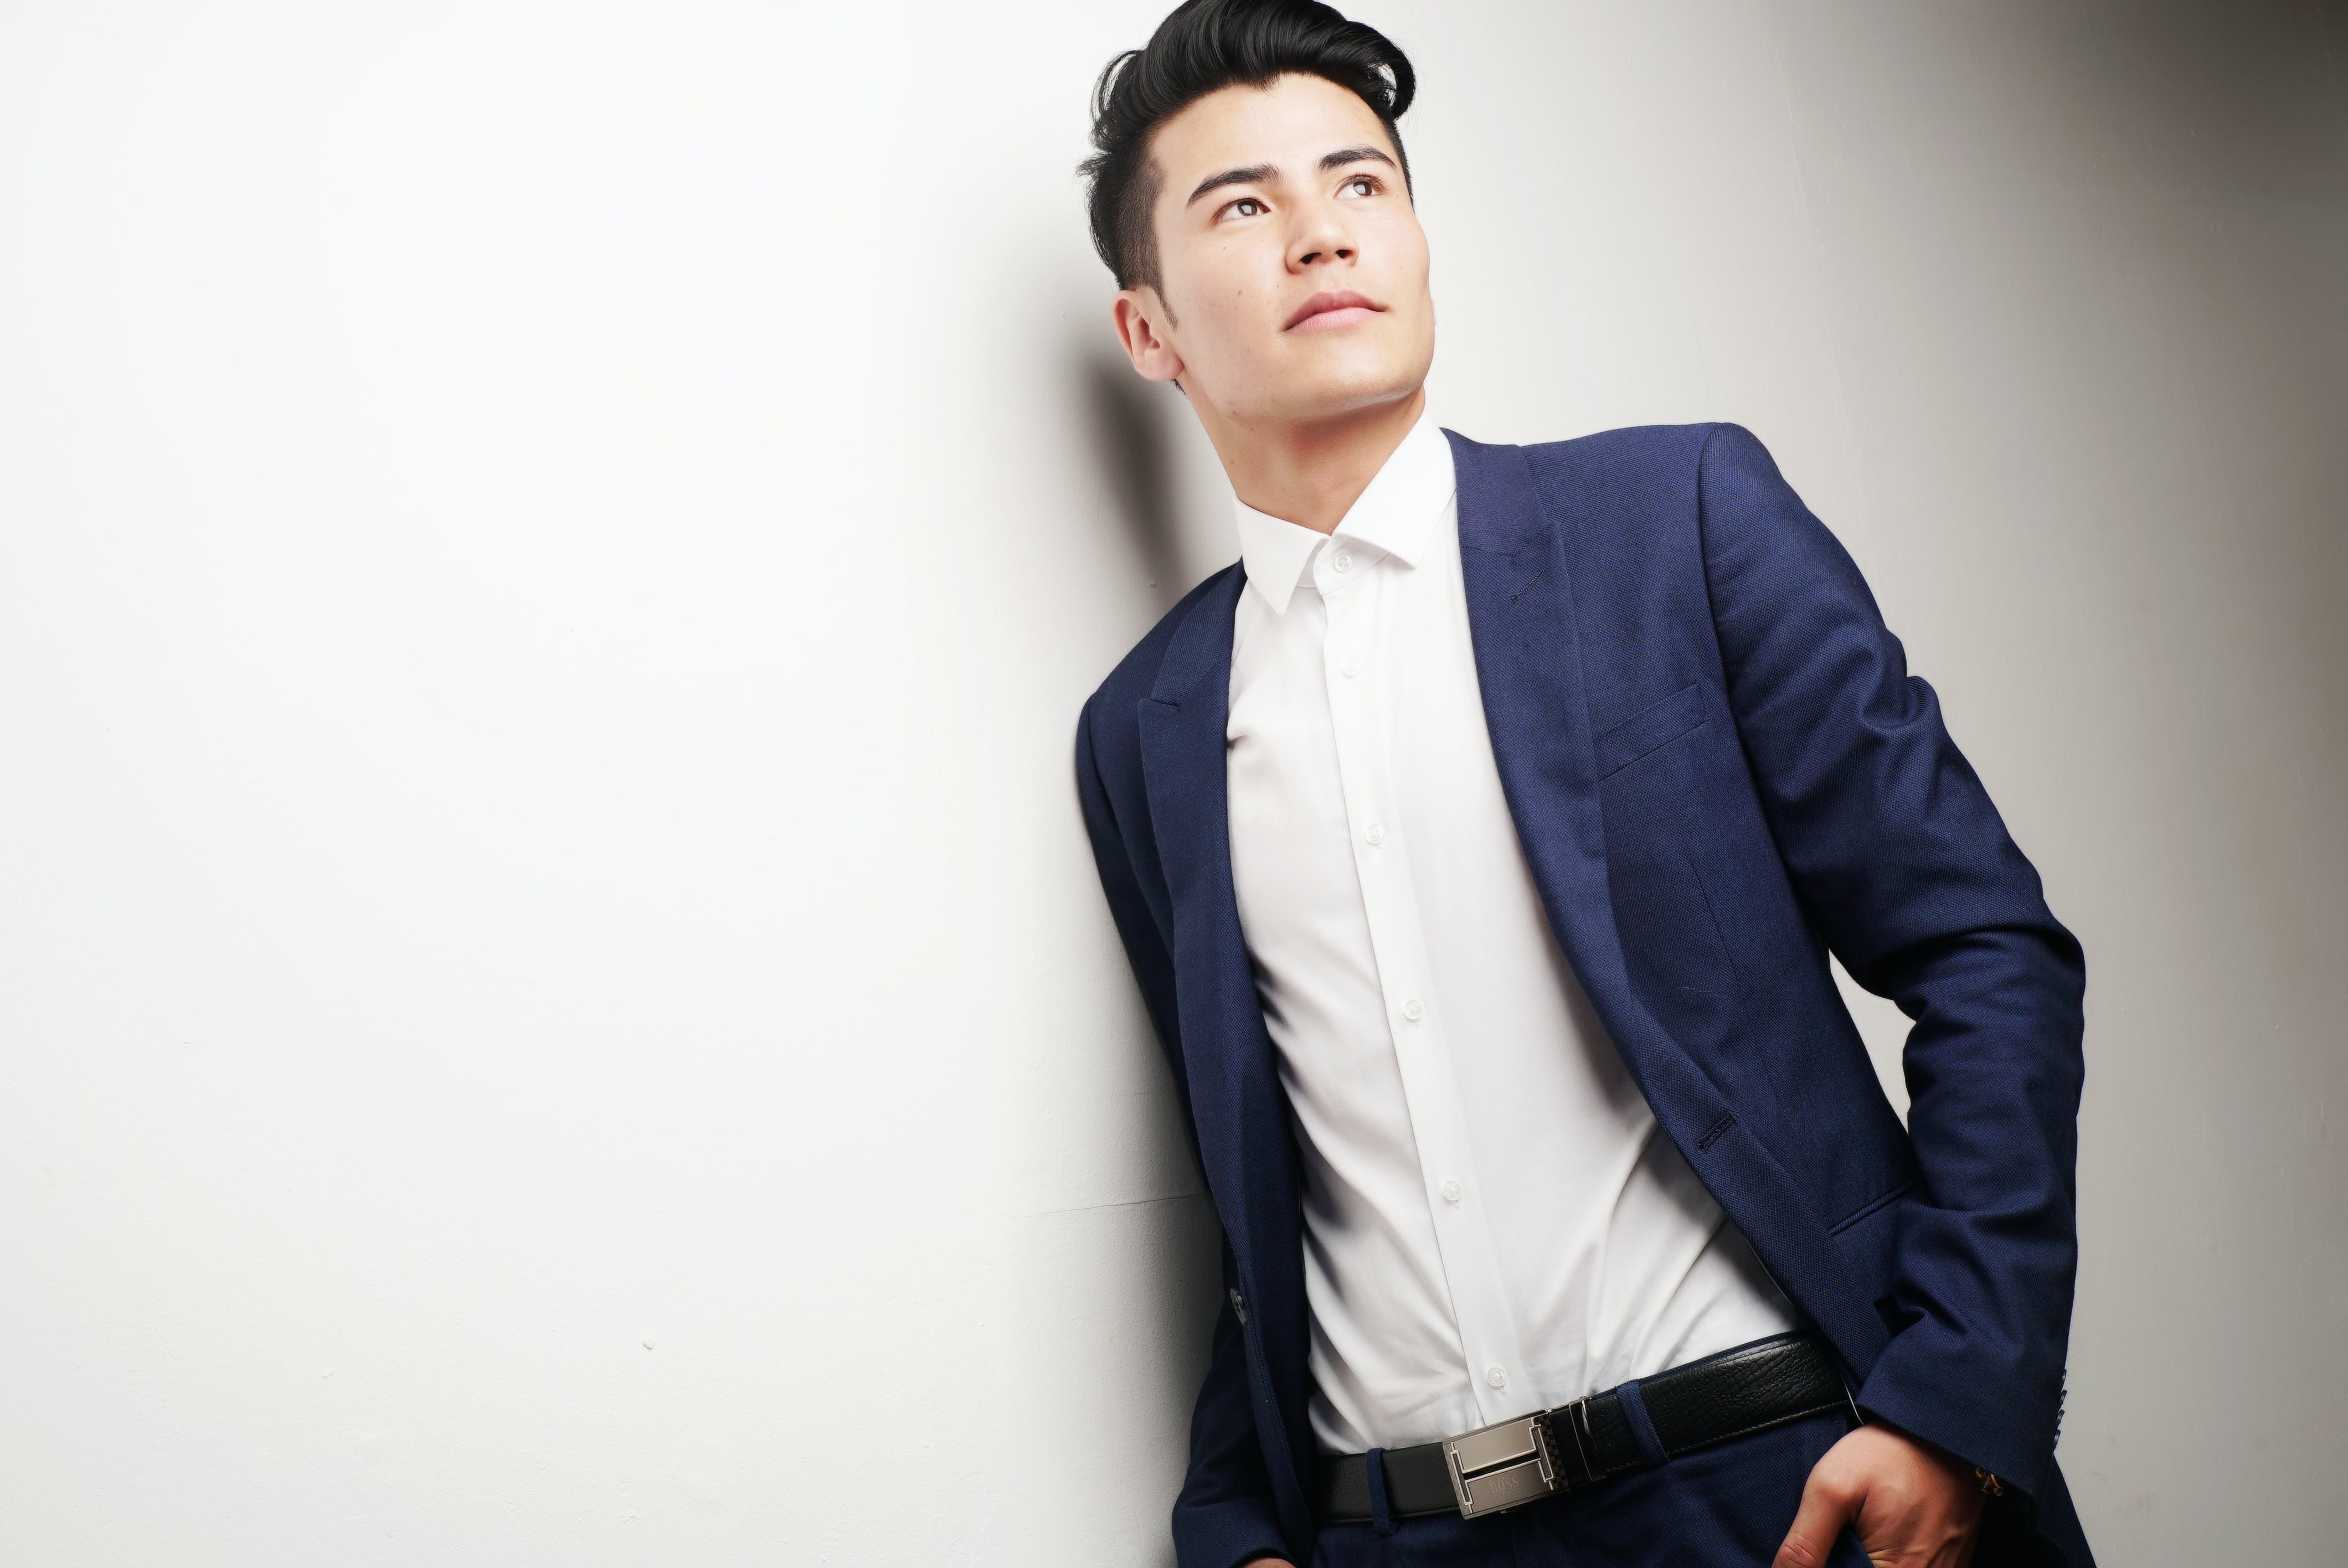 Man Wearing Blue Blazer and White Dress Shirt Leaning on White Wall